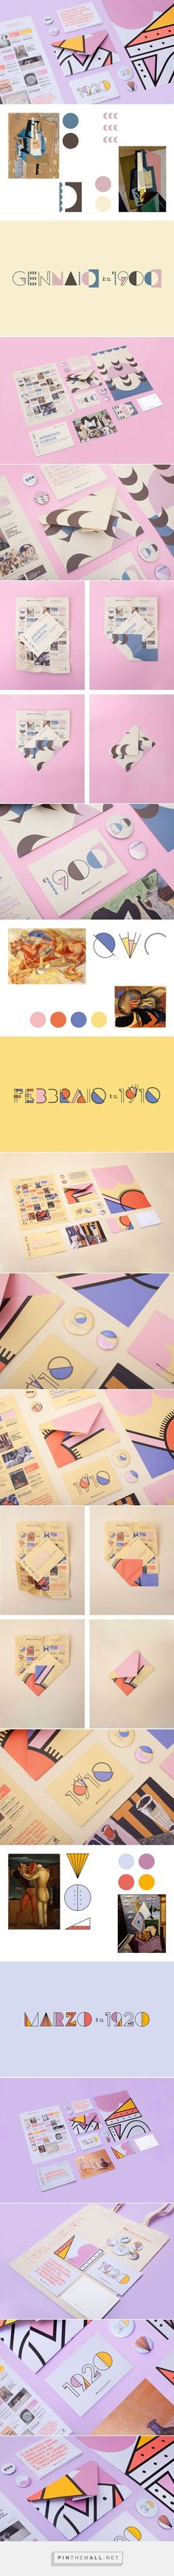 I like the block colors/design in the topmost image